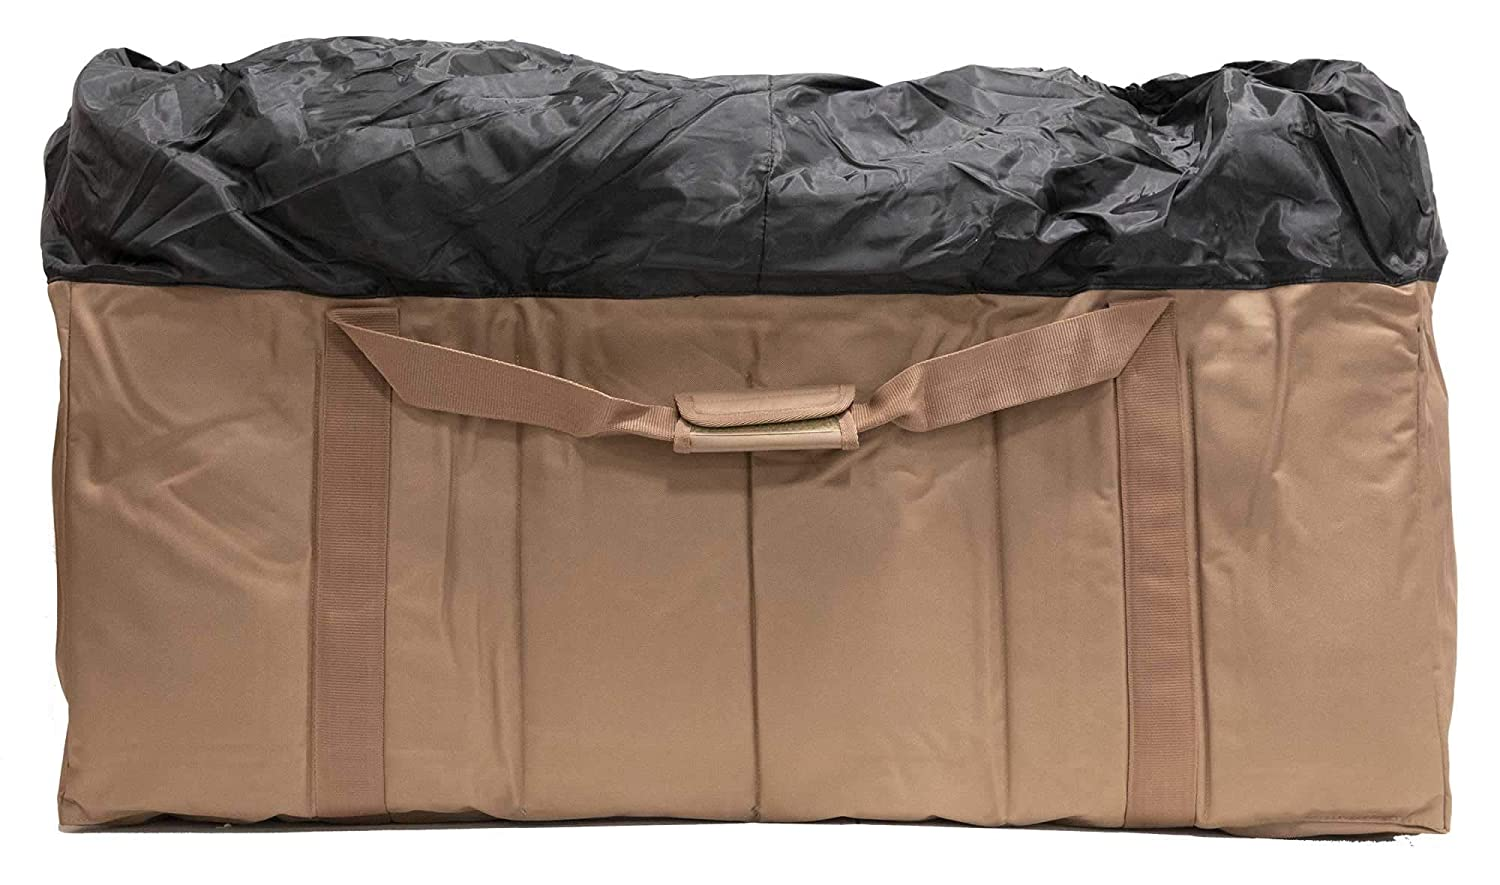 e98645a341bf Rogers Tough-Man Series 12 Slot Deluxe Floating Duck Decoy Bag